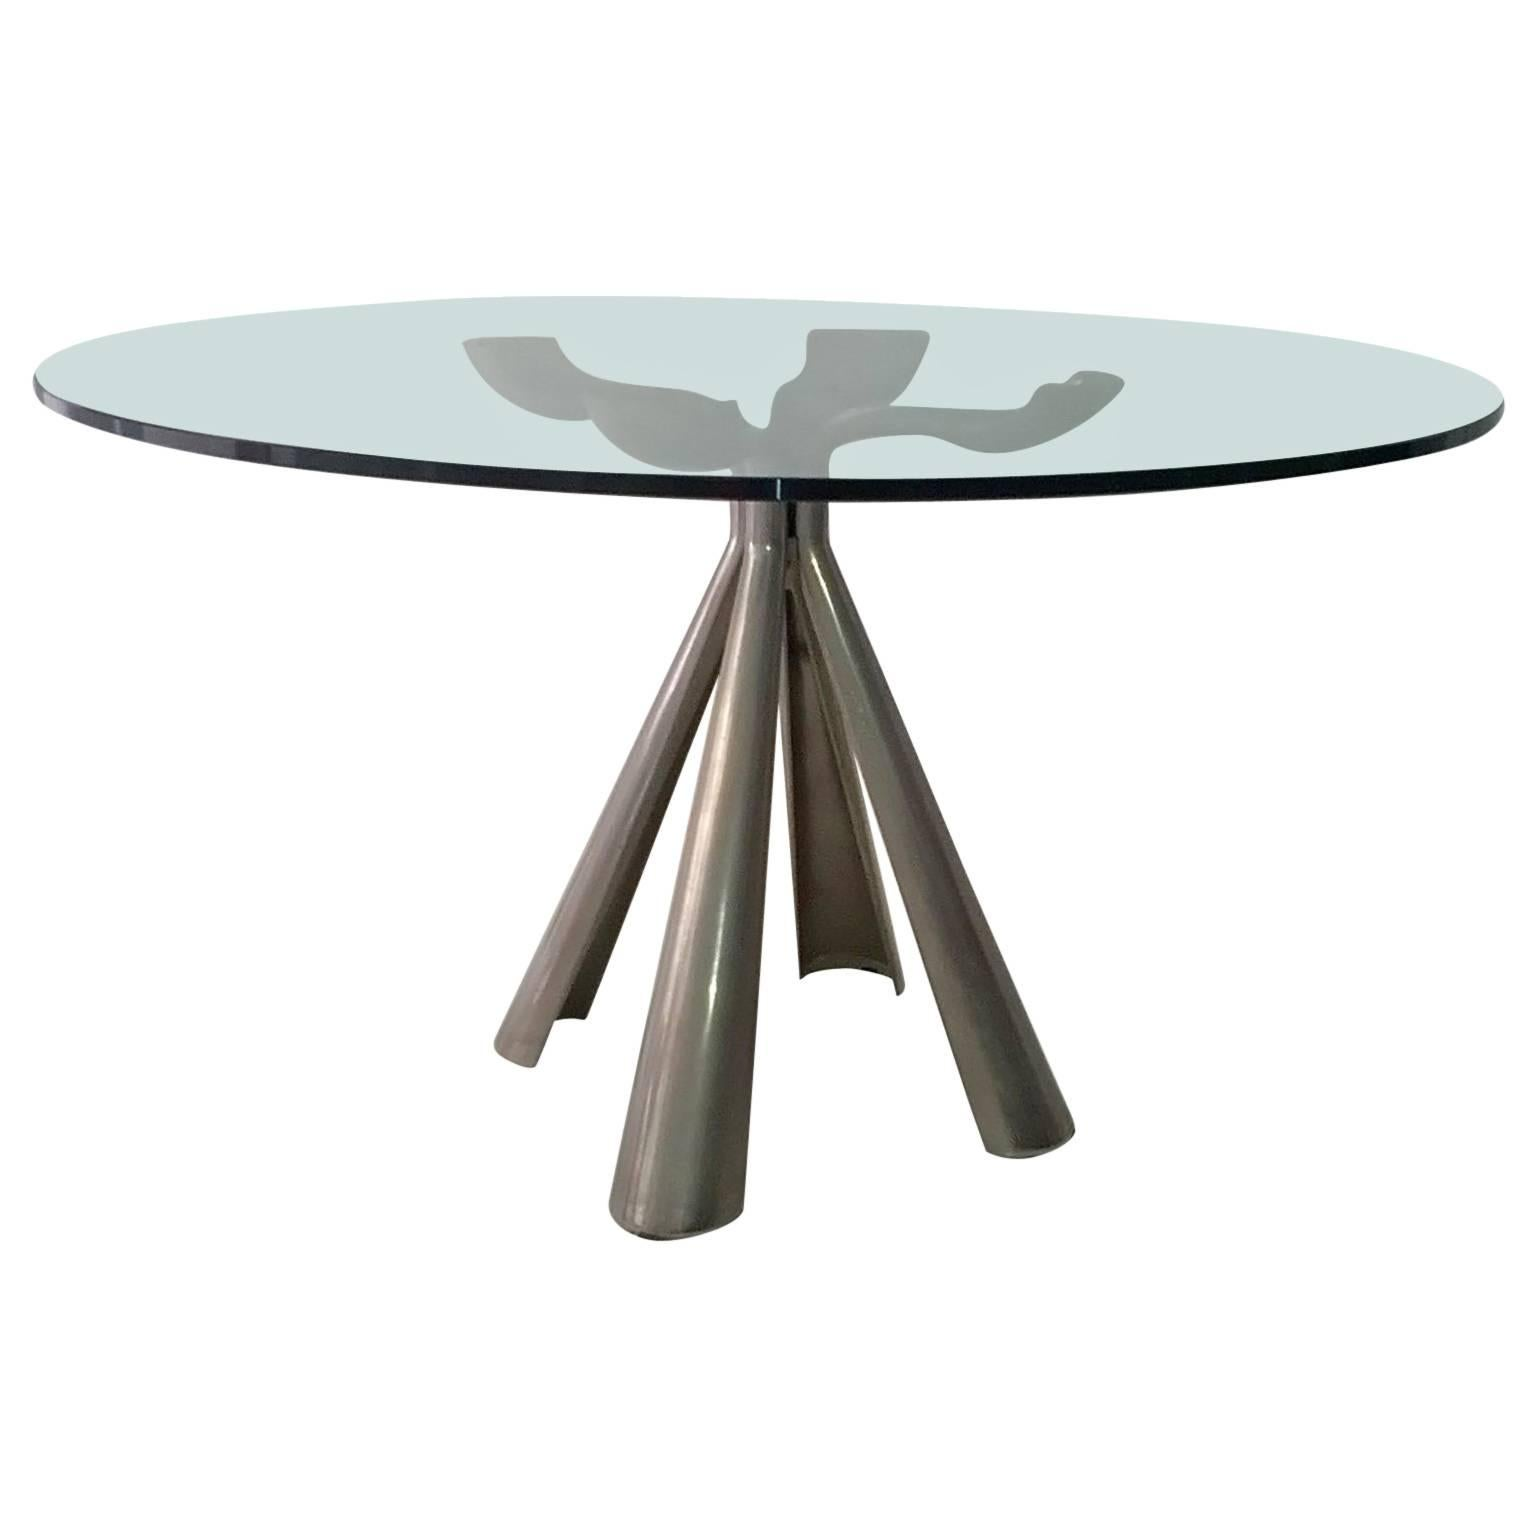 Italian Elegant Centre or Dining Table by Vittorio Introini for Saporiti, Signed